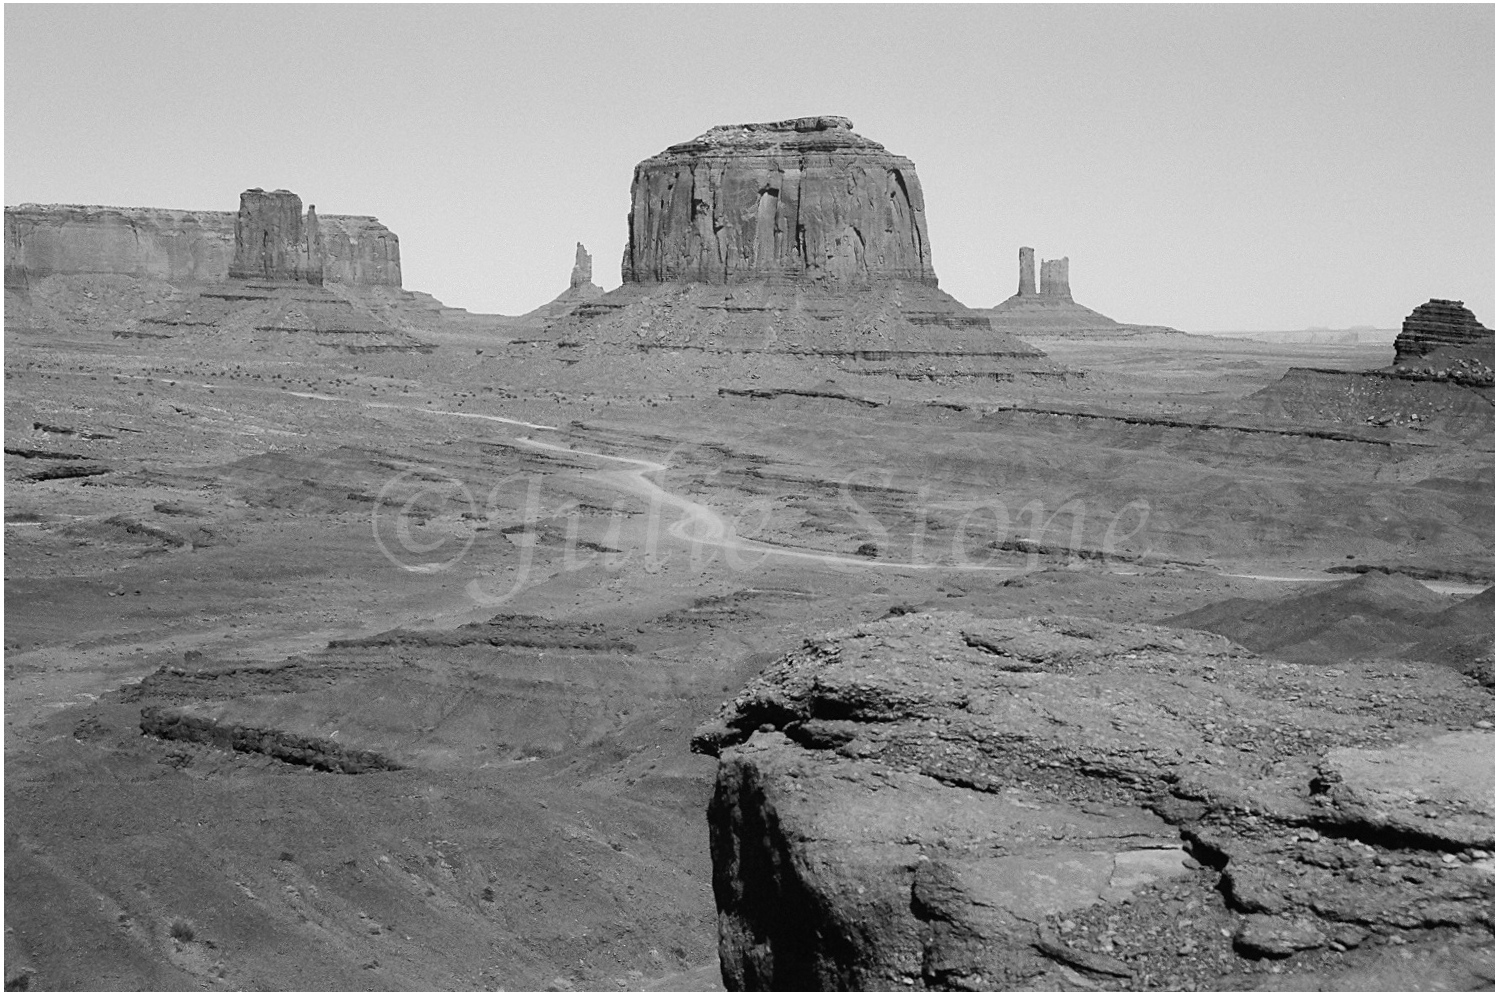 Monument Valley-The Mittens 2004 (2)